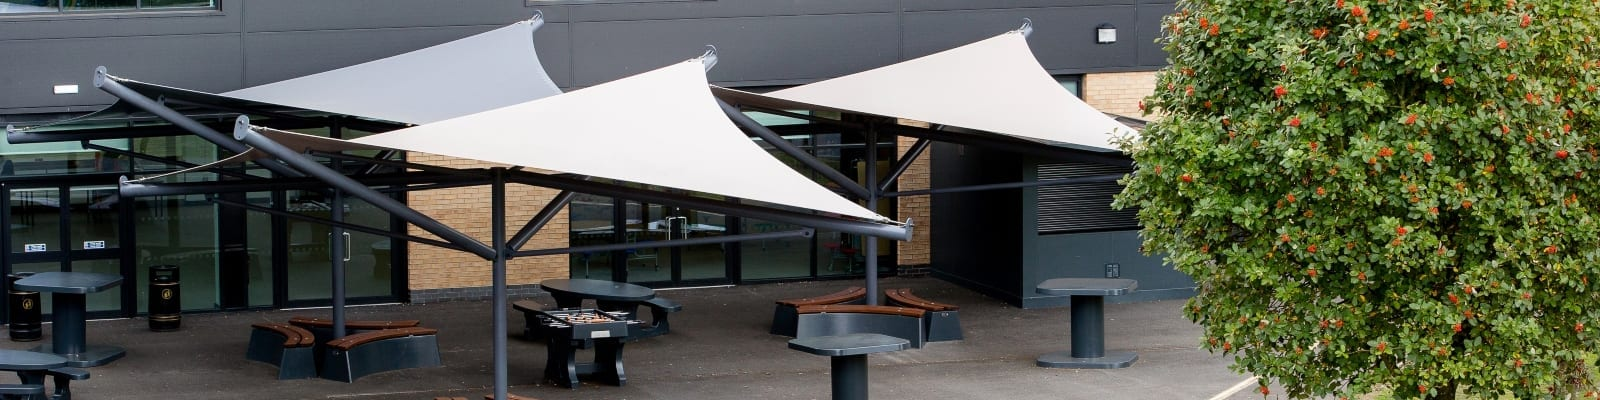 Hessle Academy Fabric Sail Shades